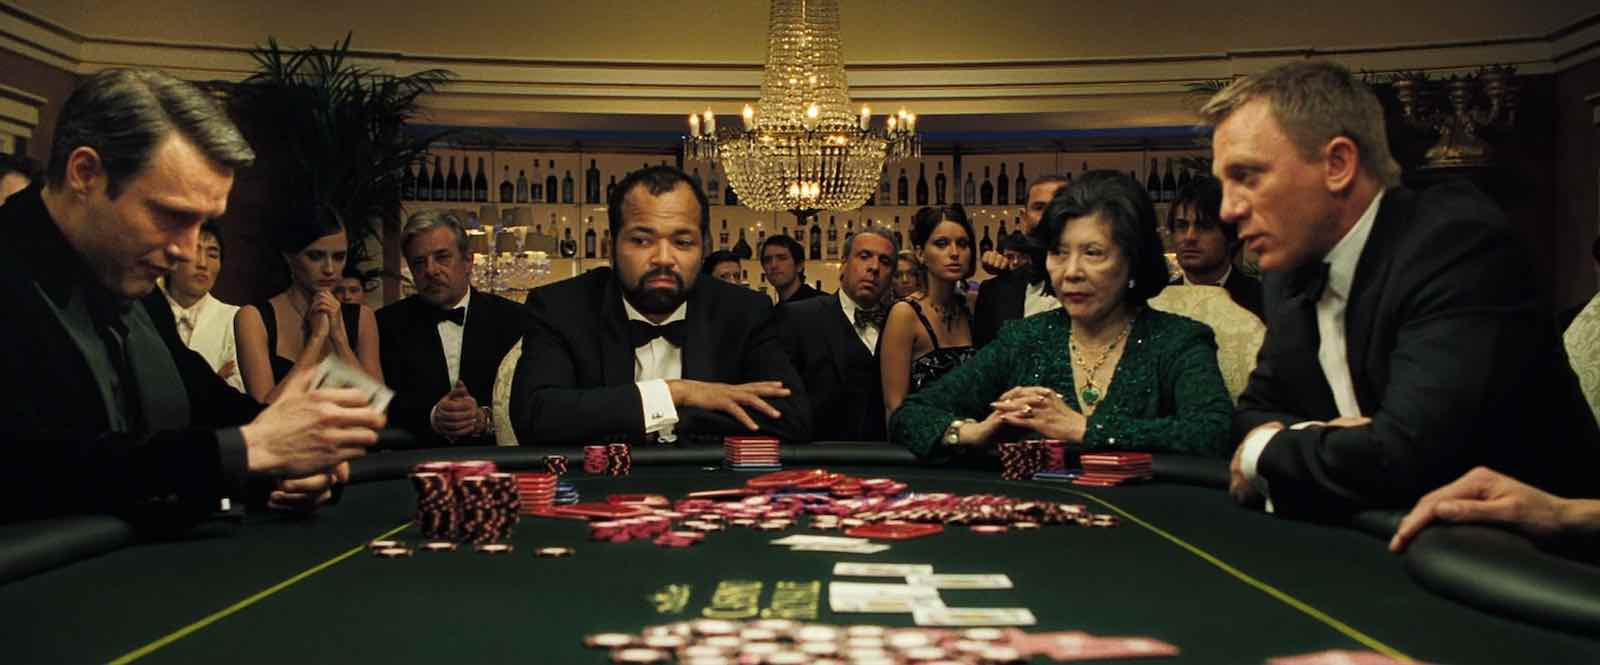 Tips For Casino Gaming - High On Films